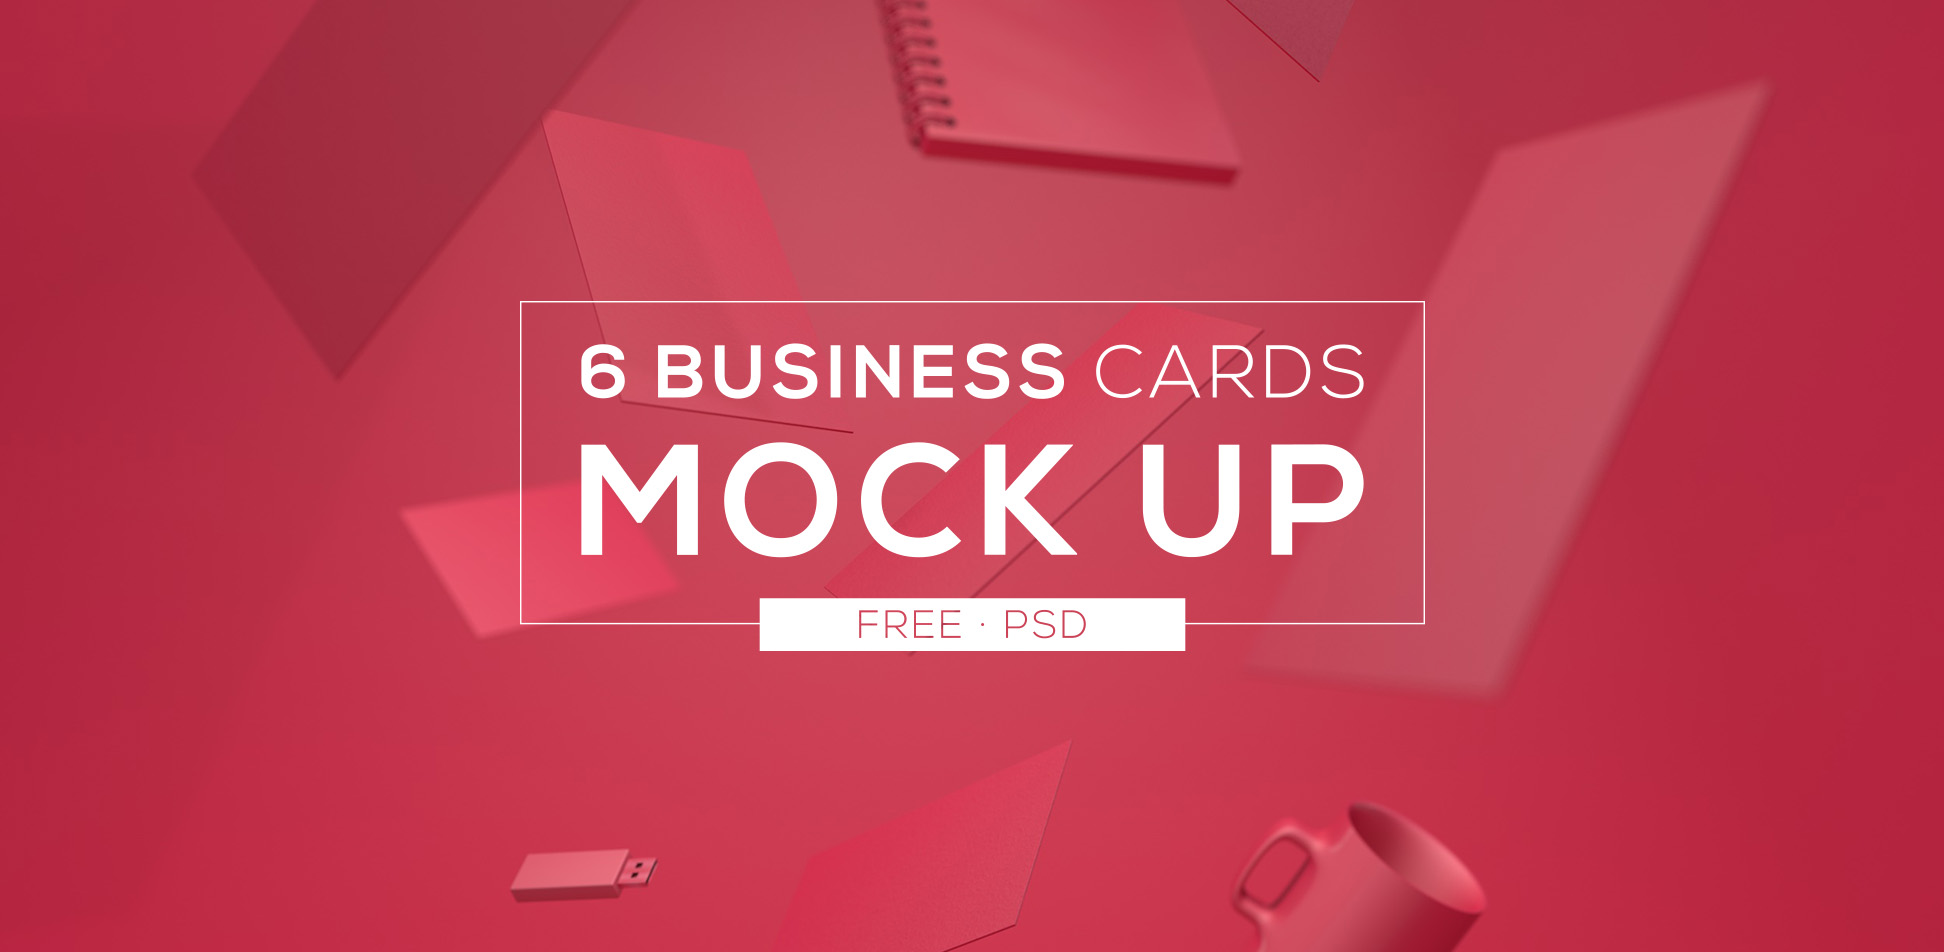 Free Download: 6 Business Cards Mock Up